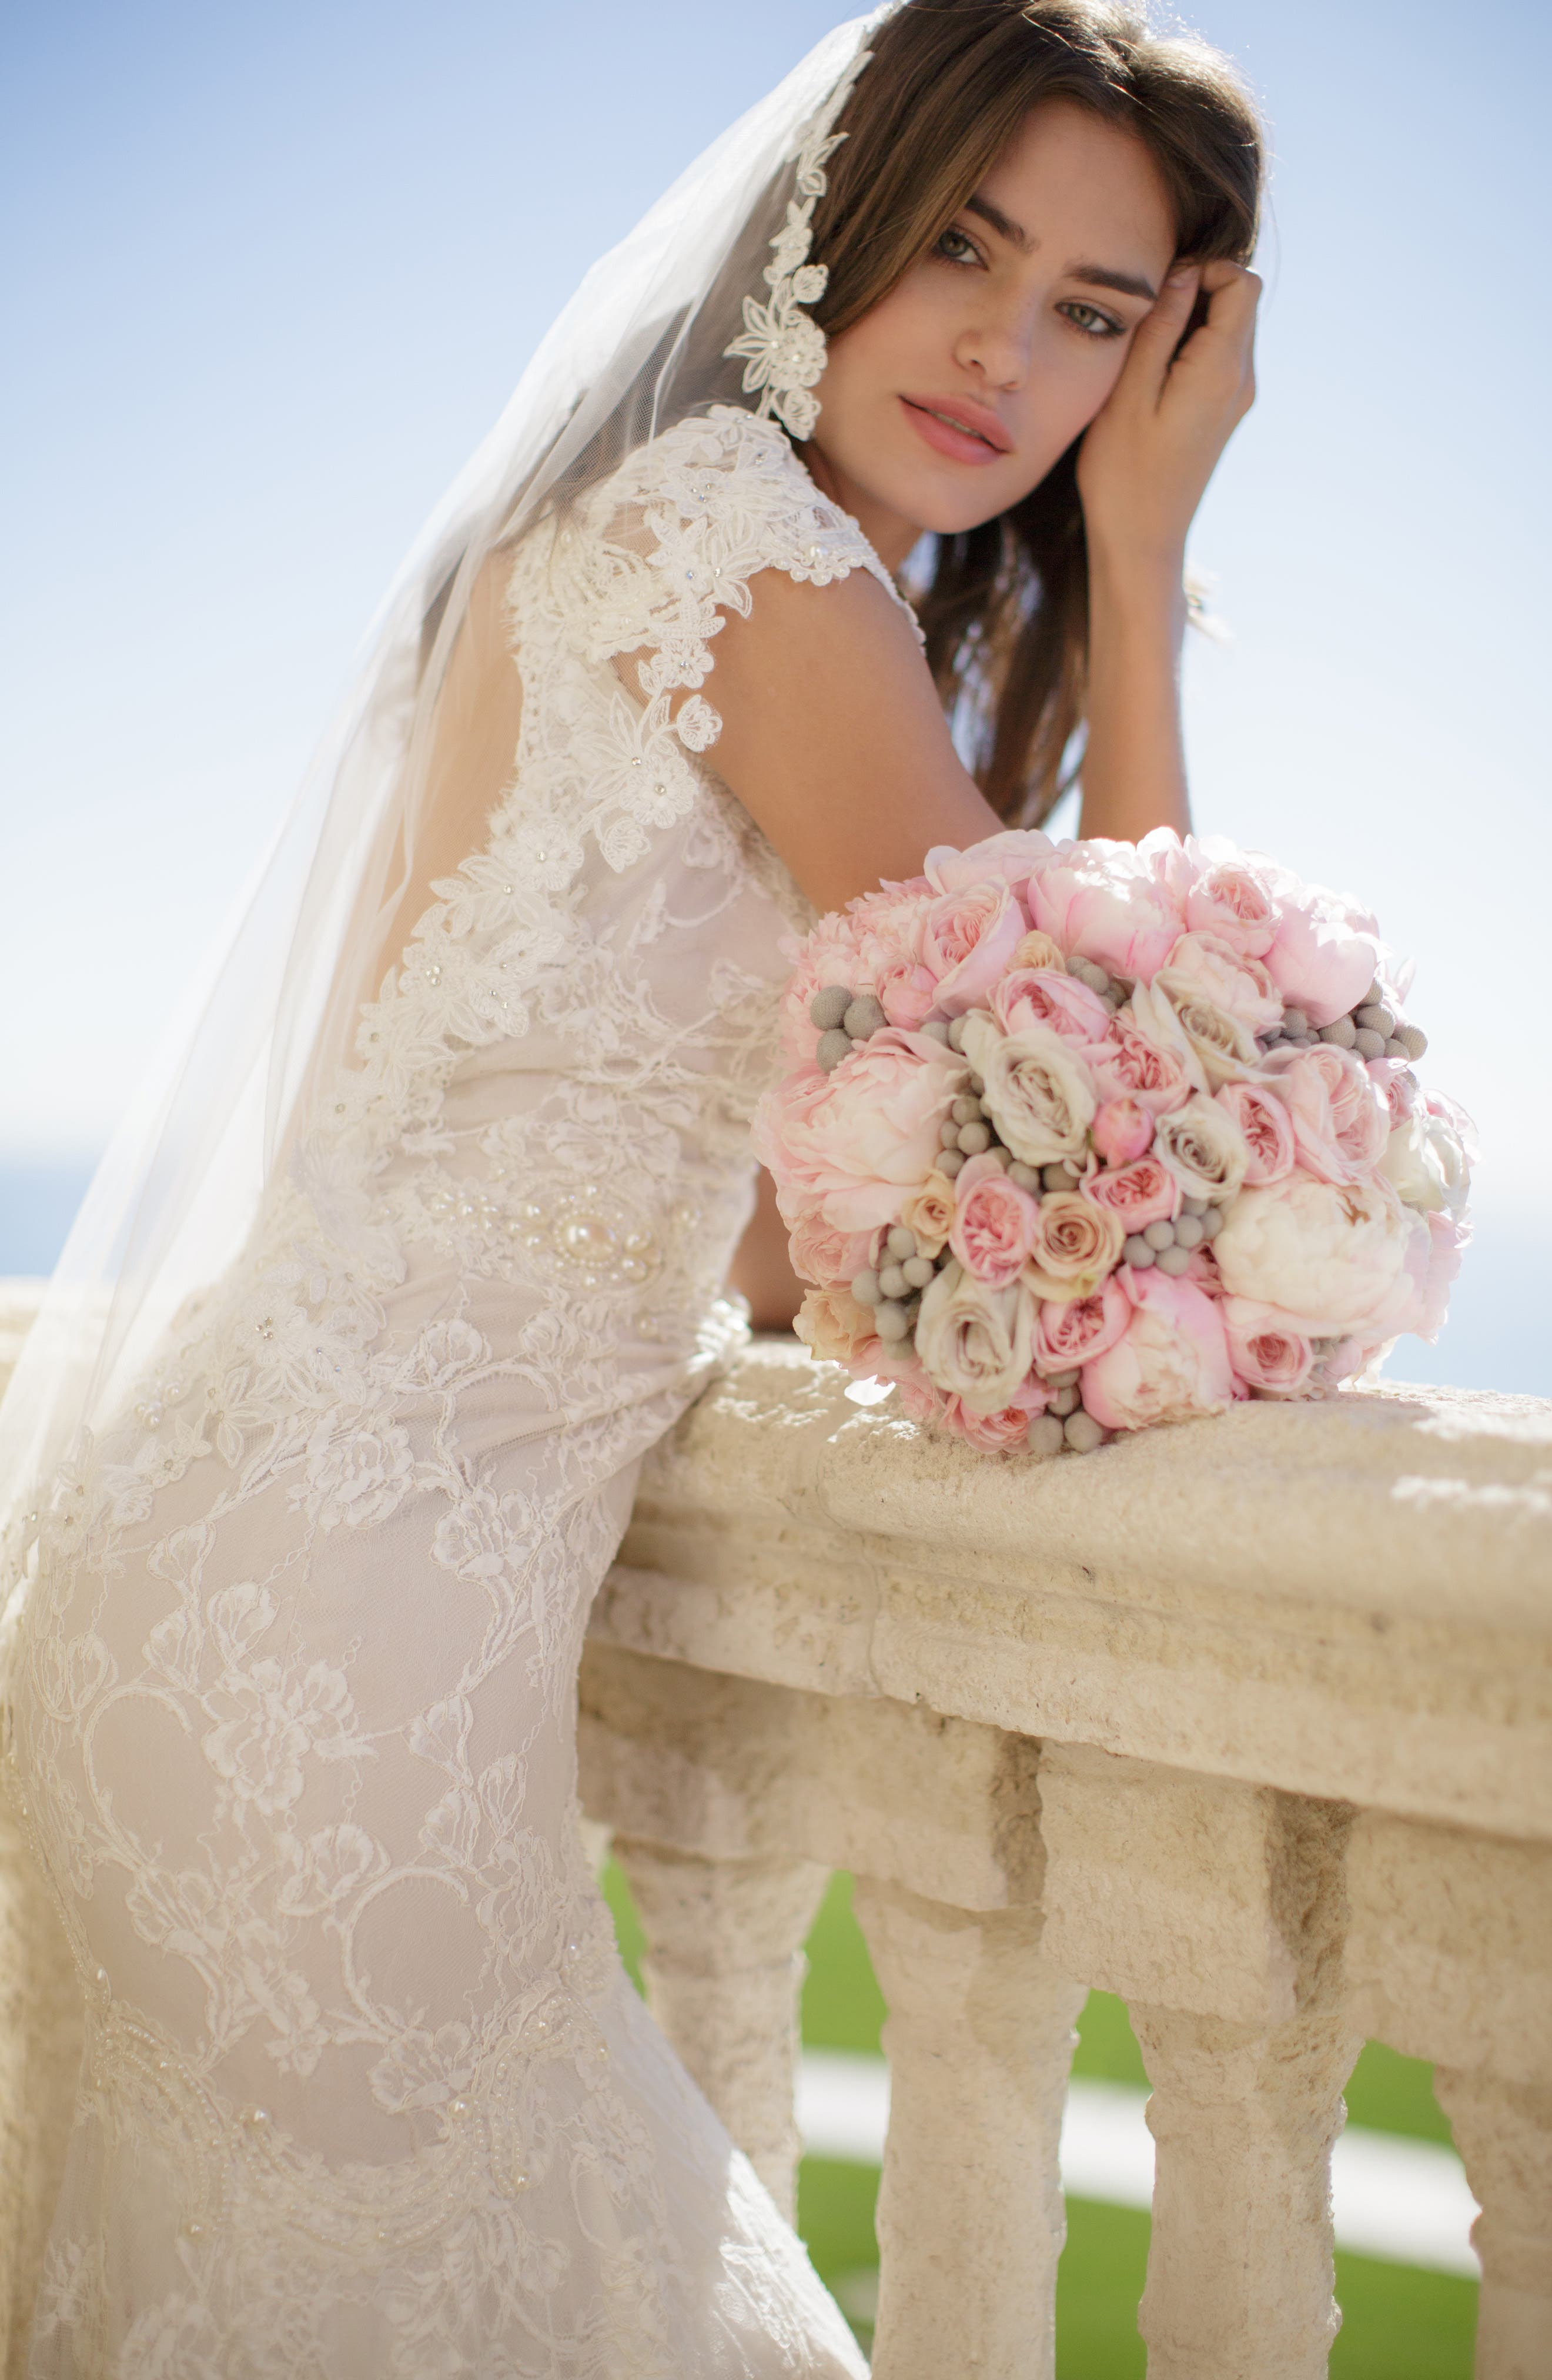 BRIDES & HAIRPINS Angelina Lace Trim Tulle Veil